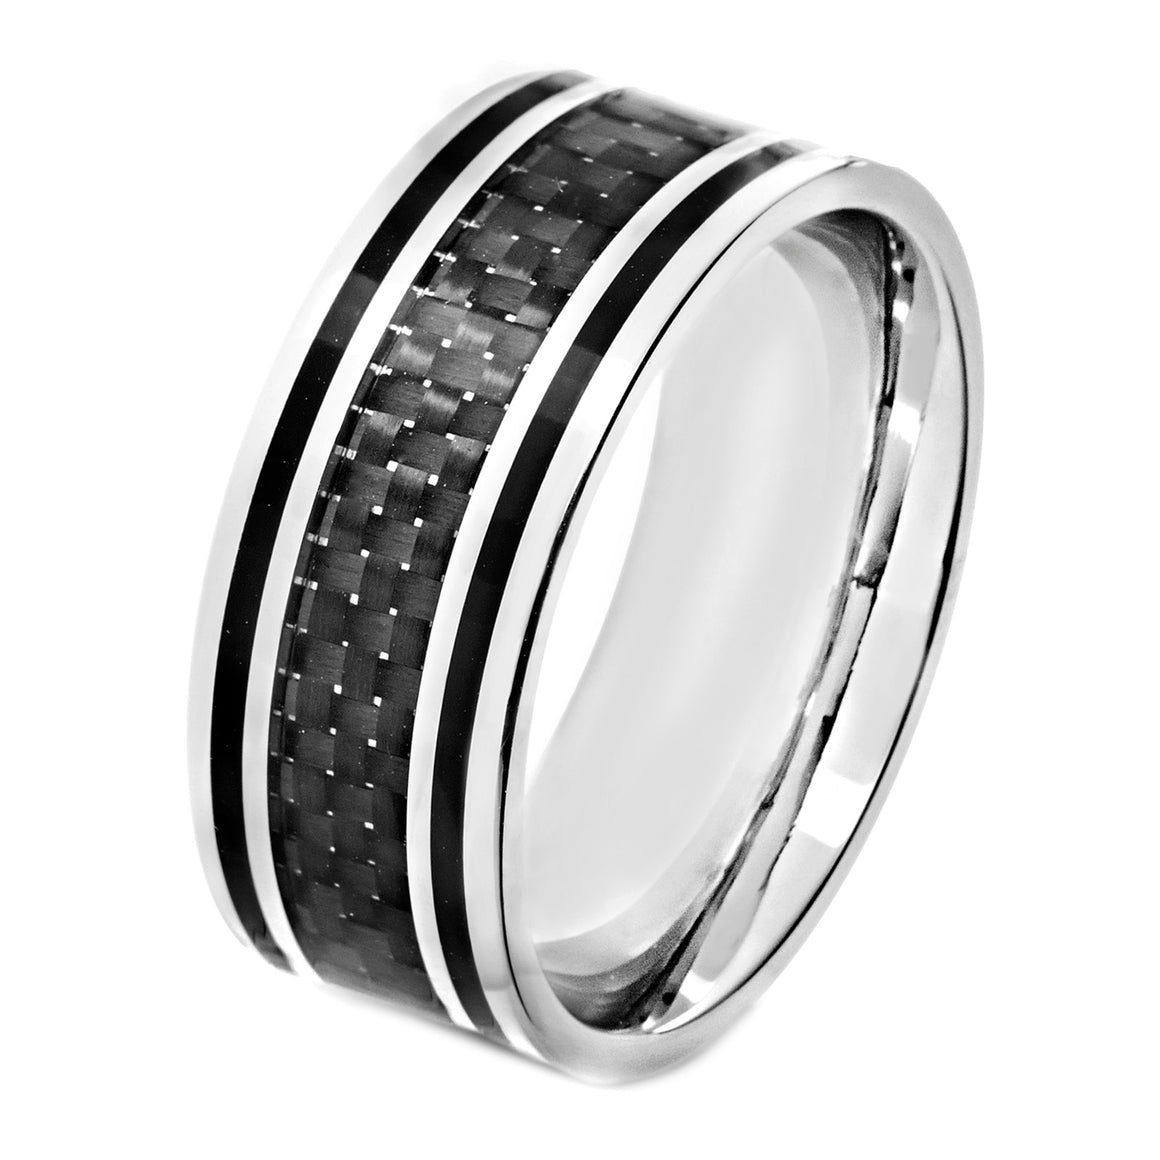 Crucible Stainless Steel Polished Black Carbon Fiber Black Enamel Inlay Ring